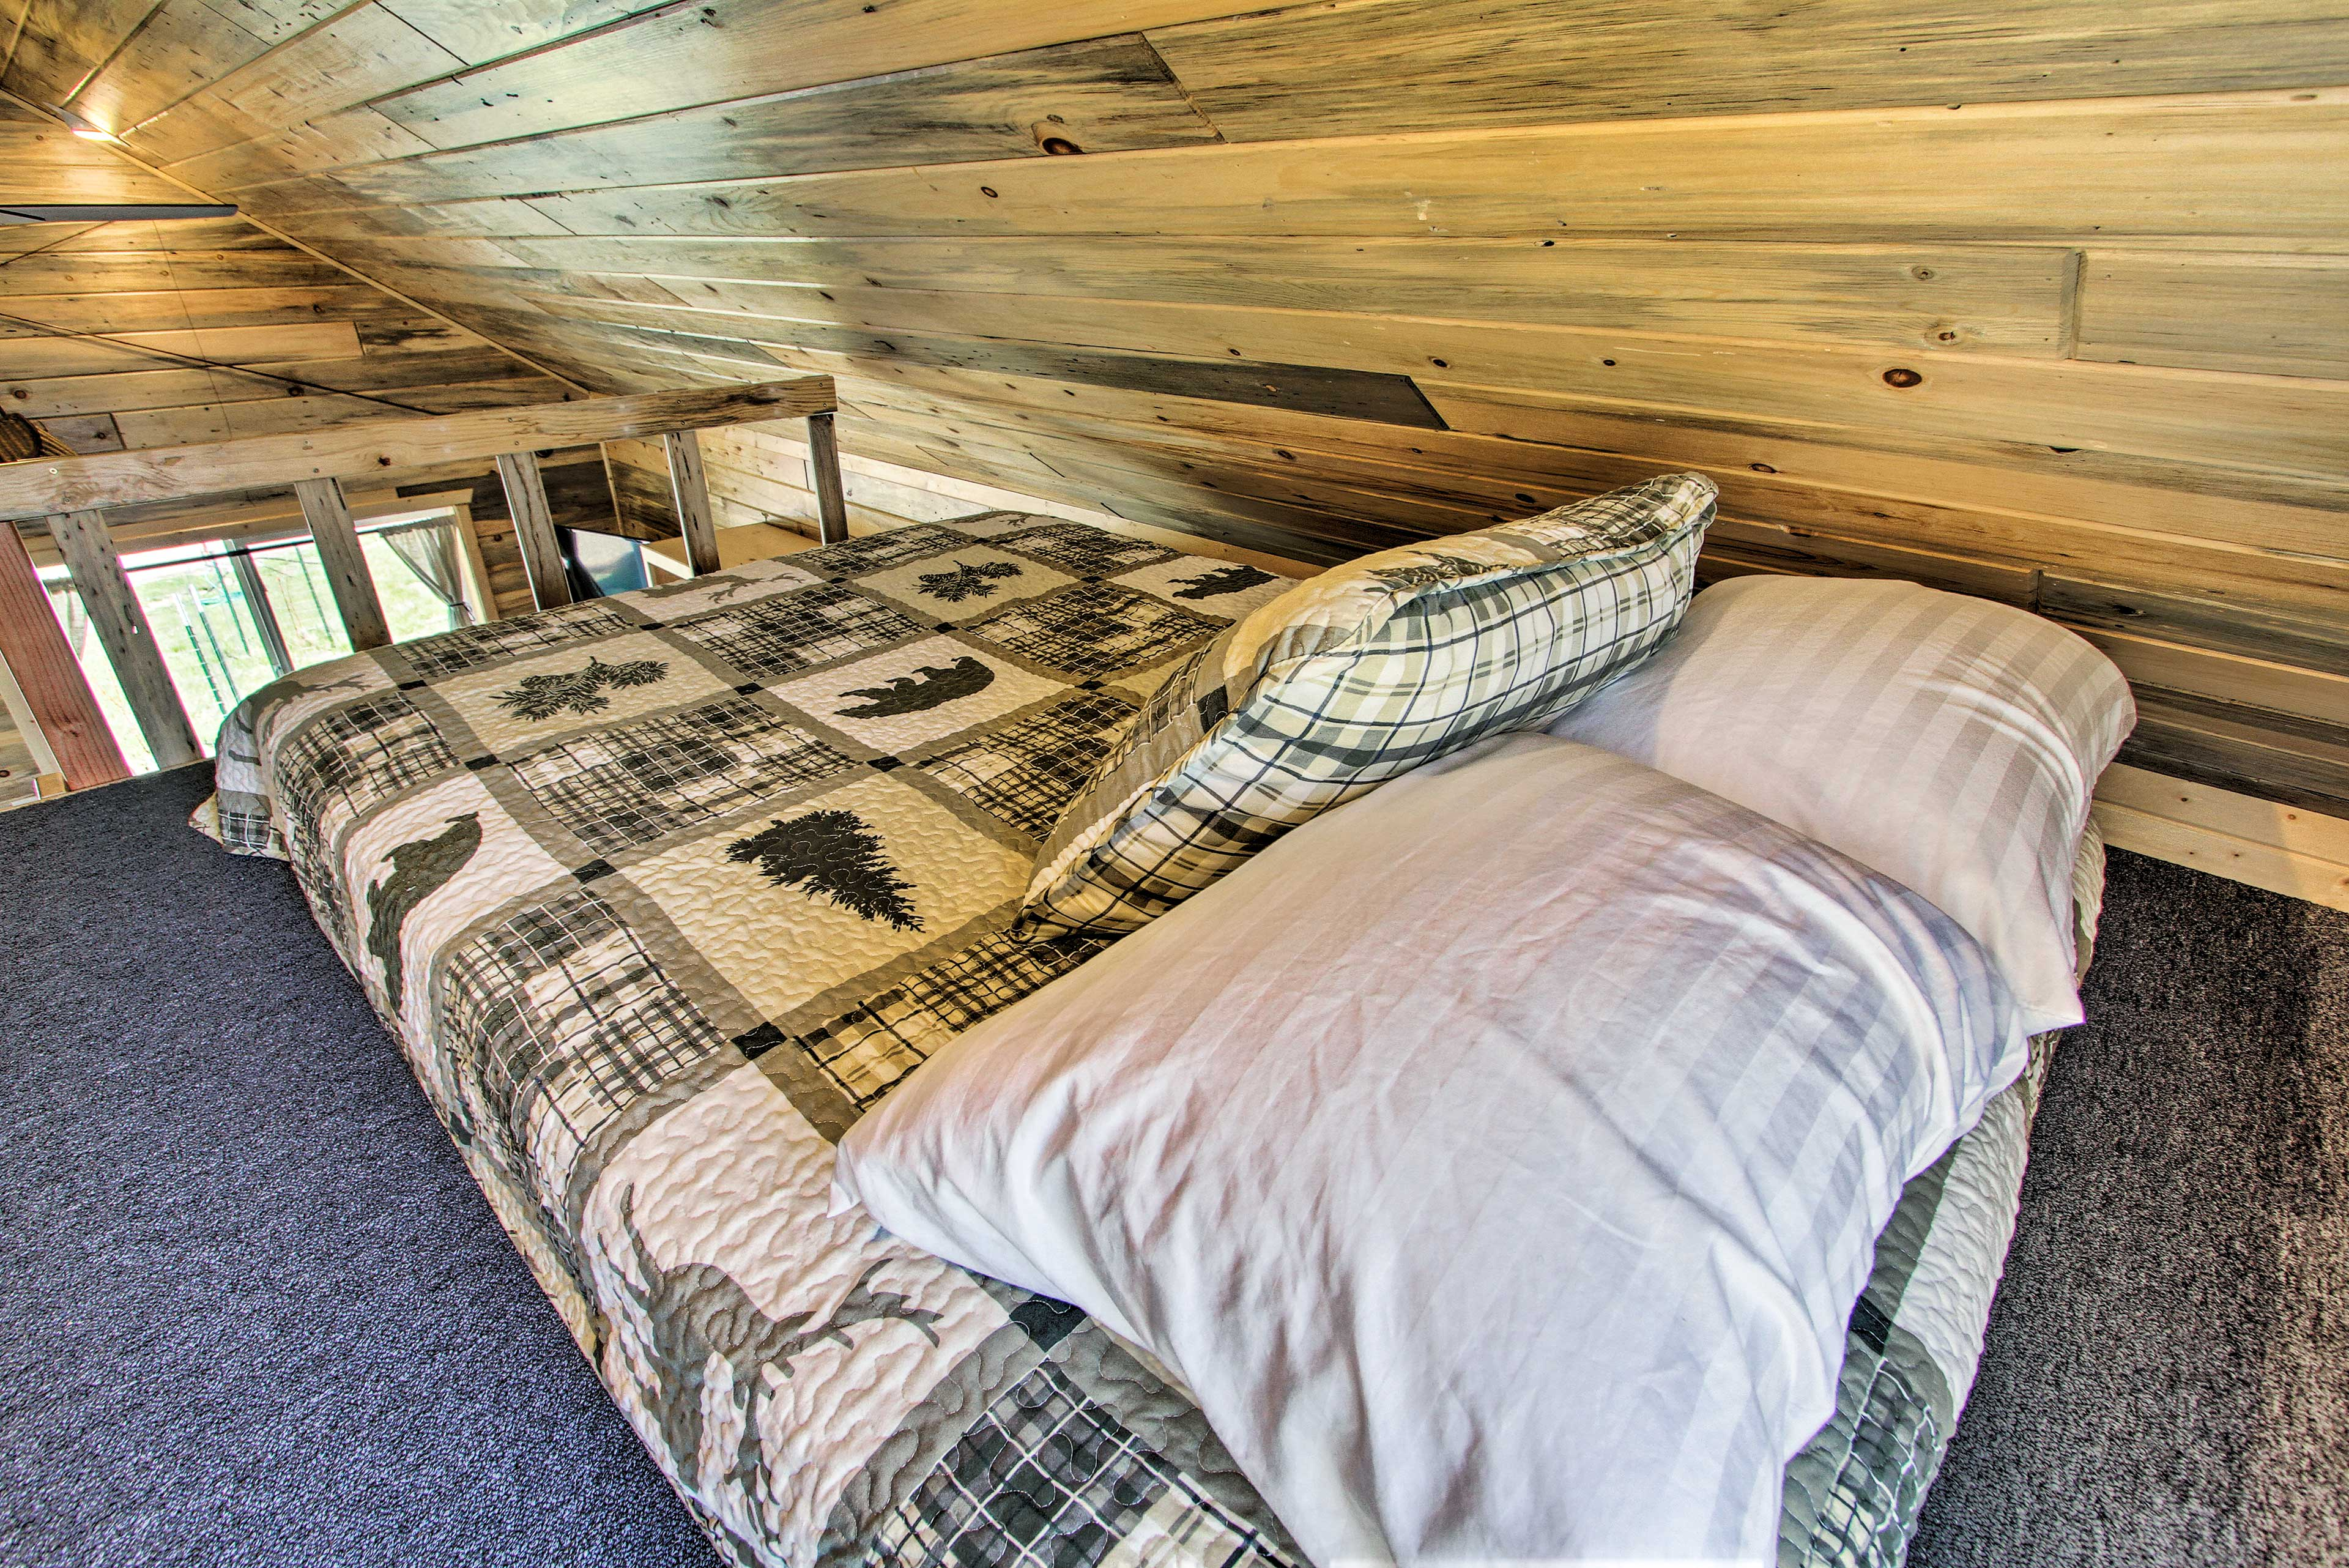 The loft features a full bed and twin bed.